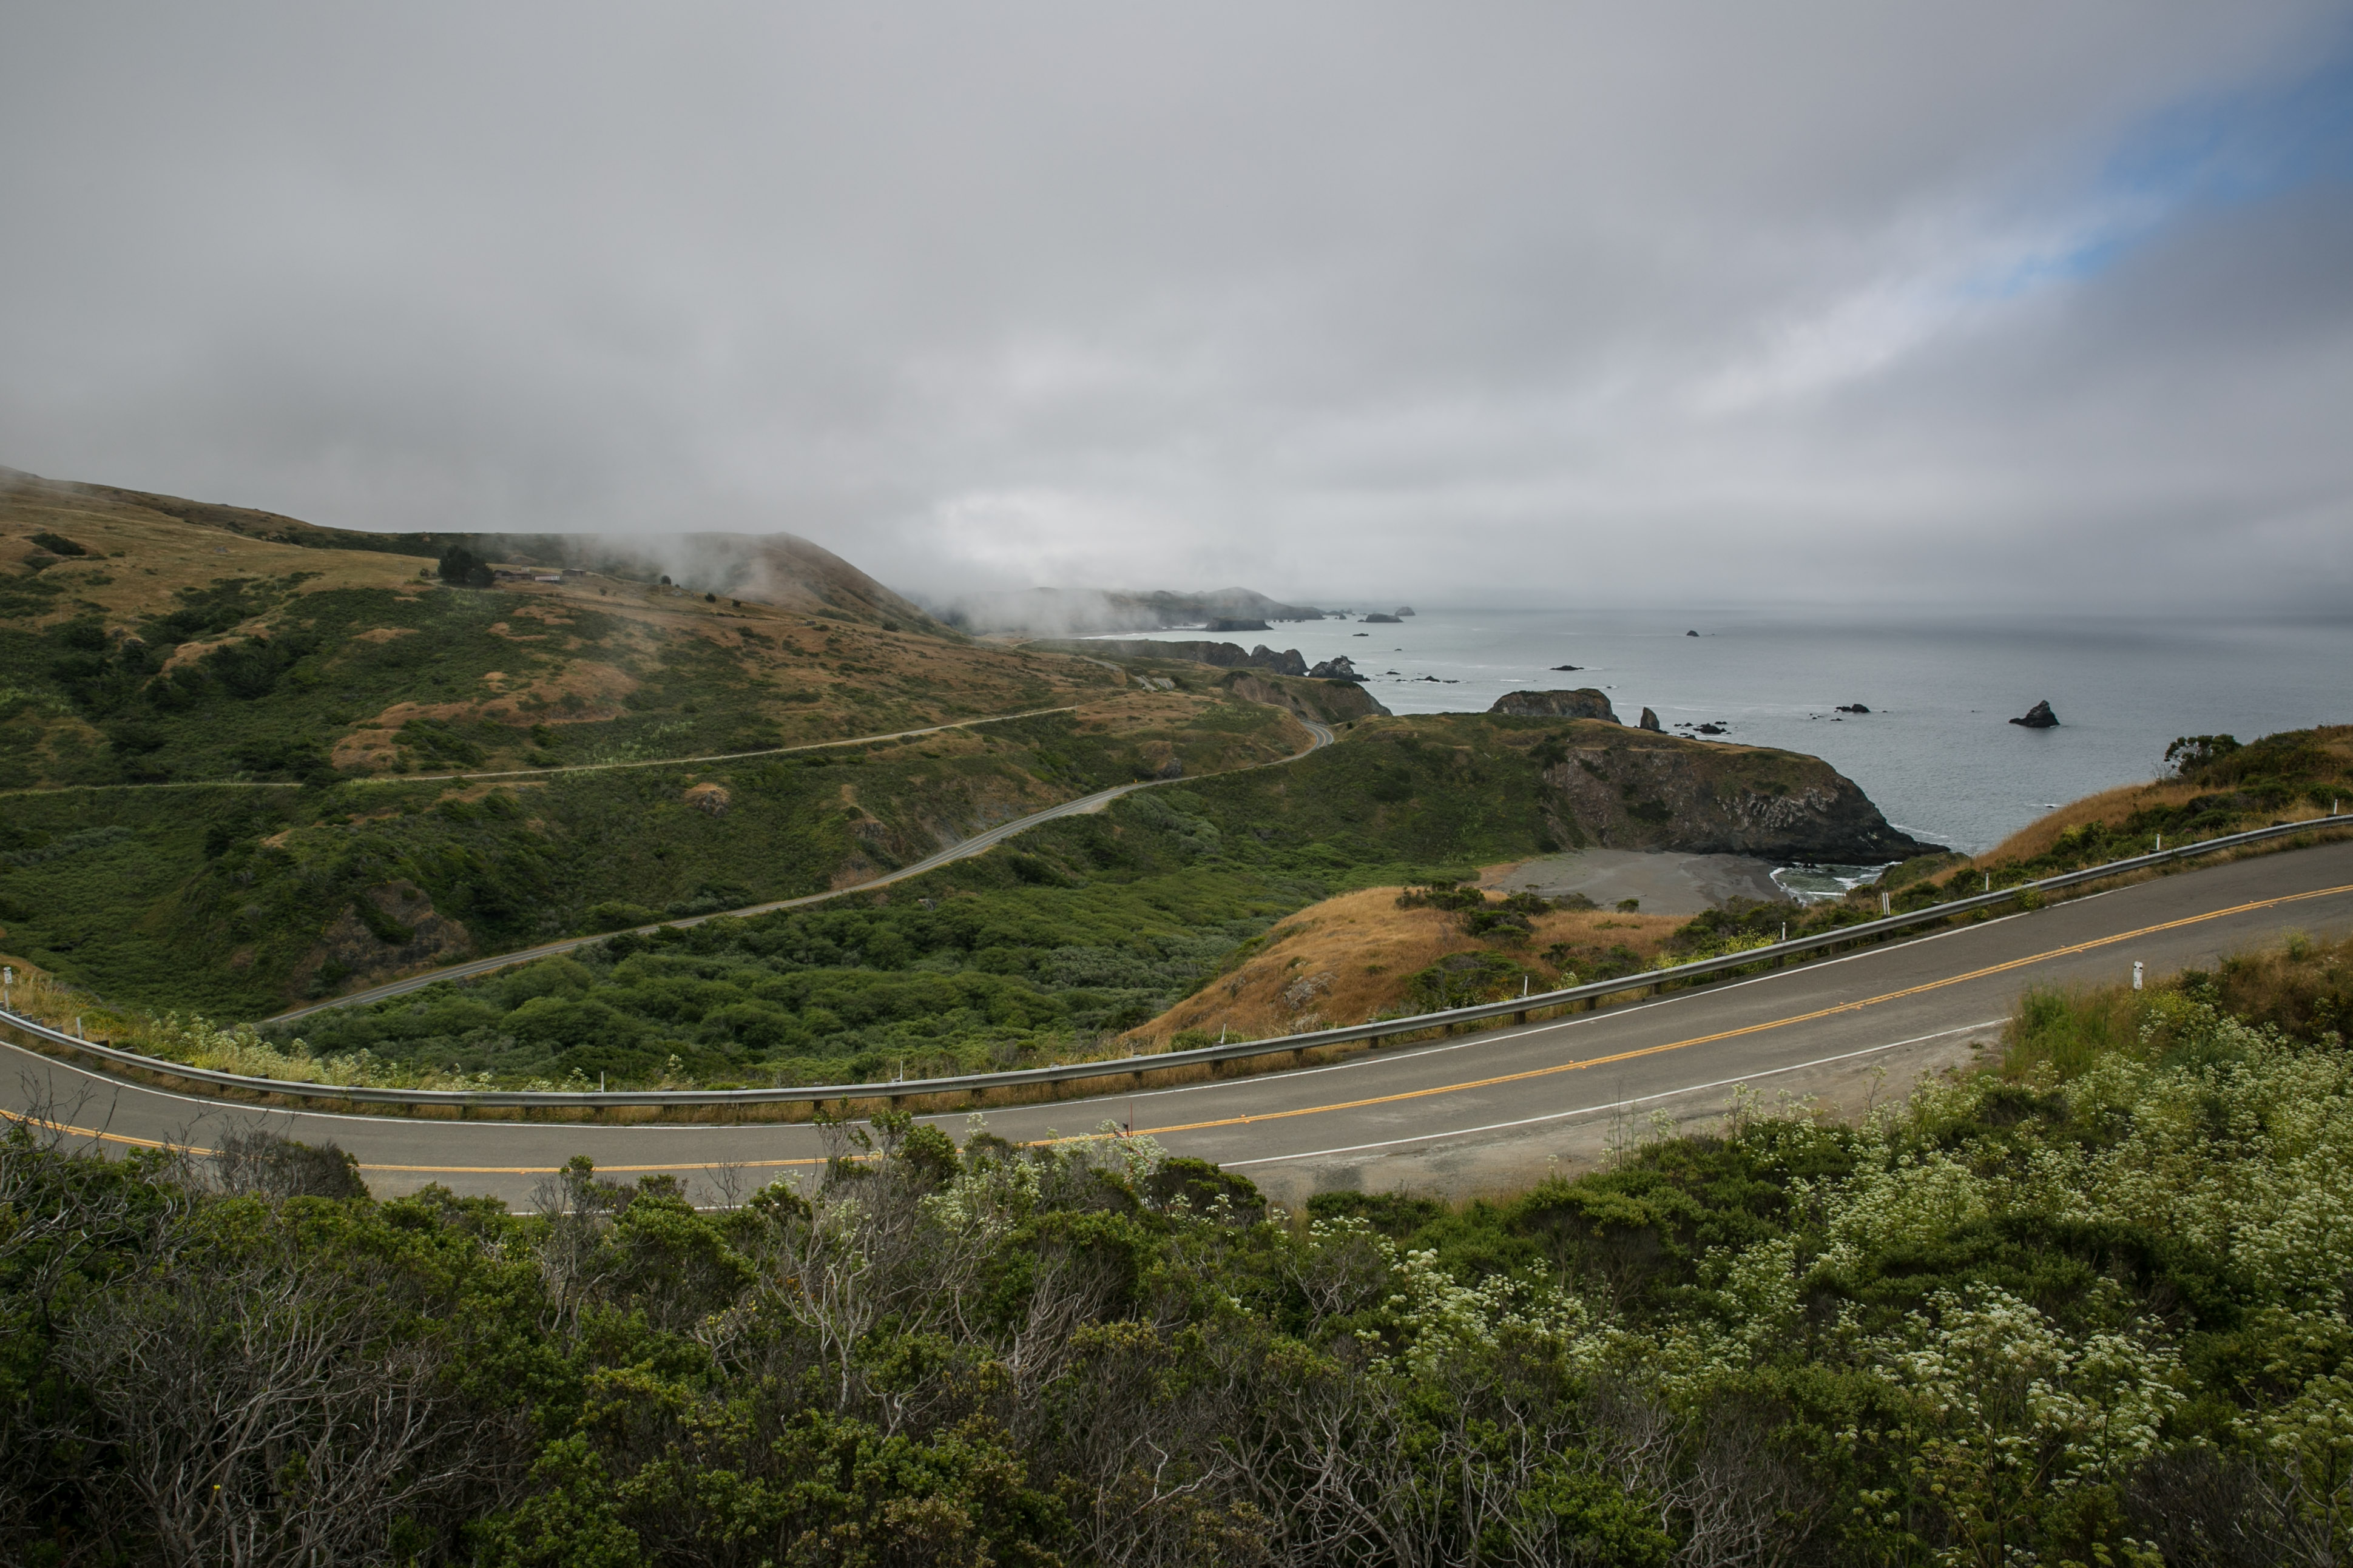 Highway 1 near Bodega Bay. (Photo by George Rose via Getty Images)